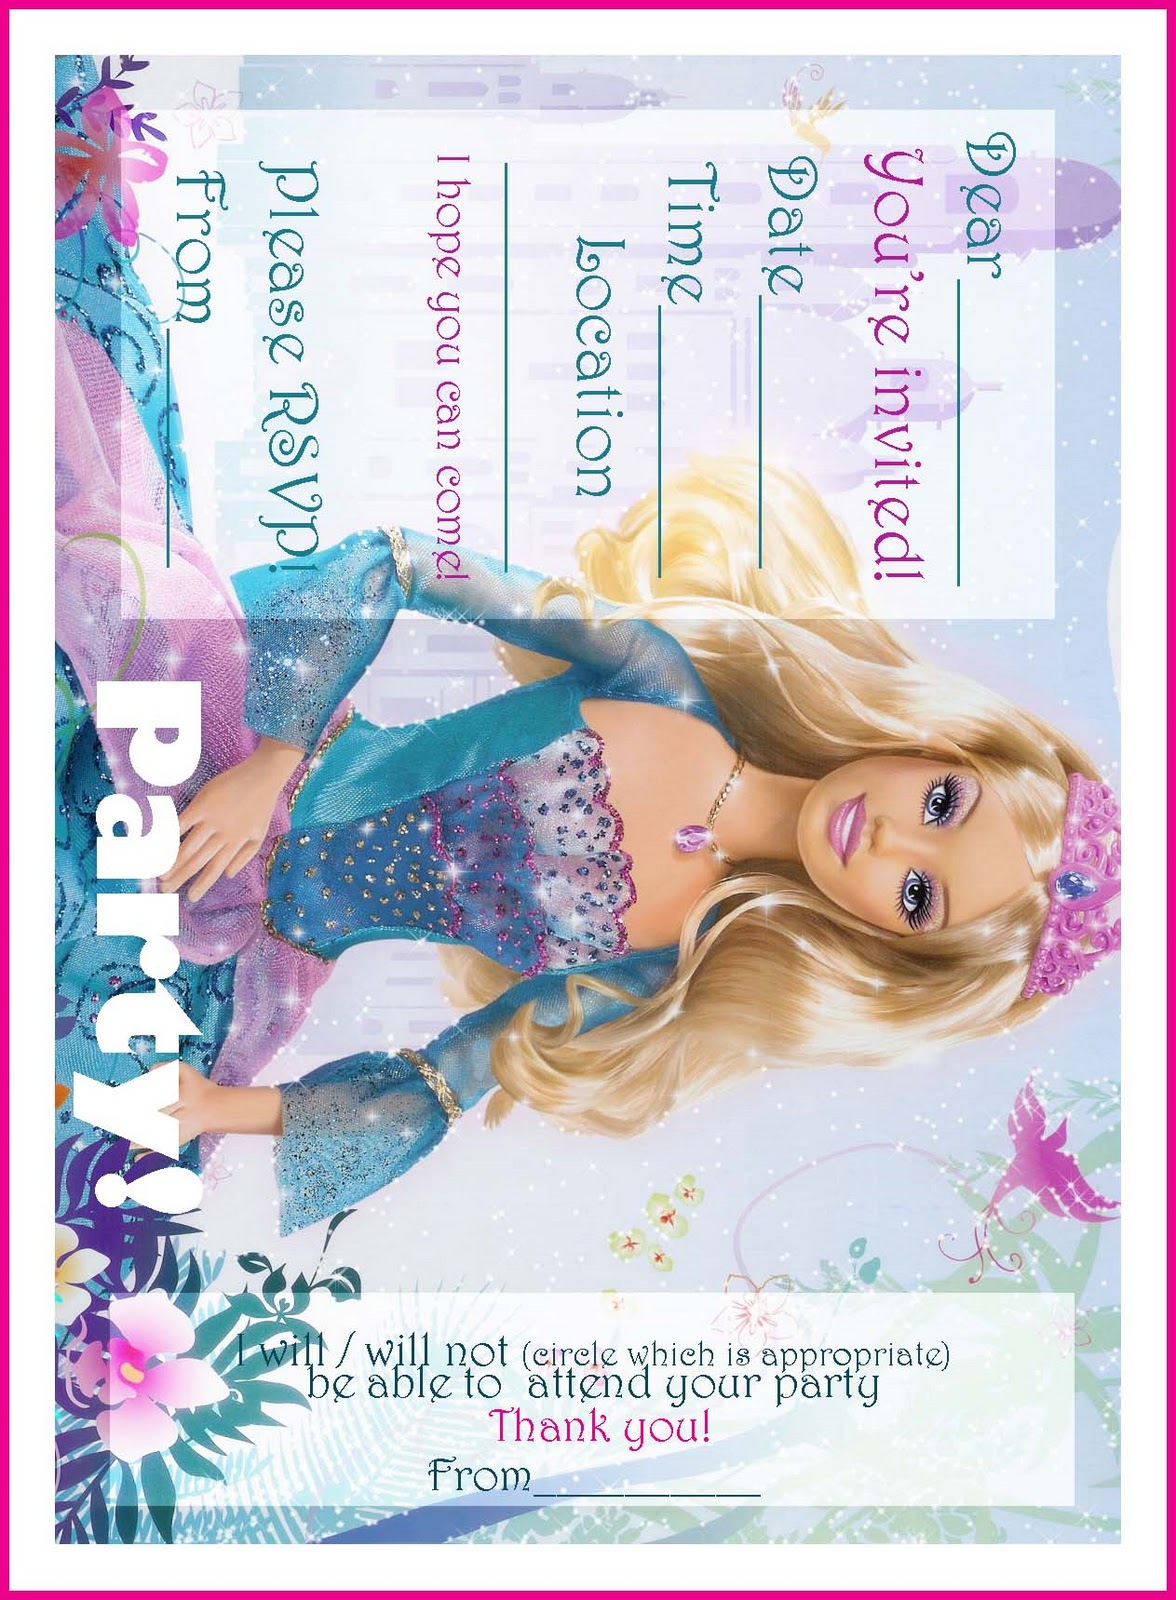 FREE PRINTABLE PRINCESS BARBIE BIRTHDAY PARTY INVITATIONS